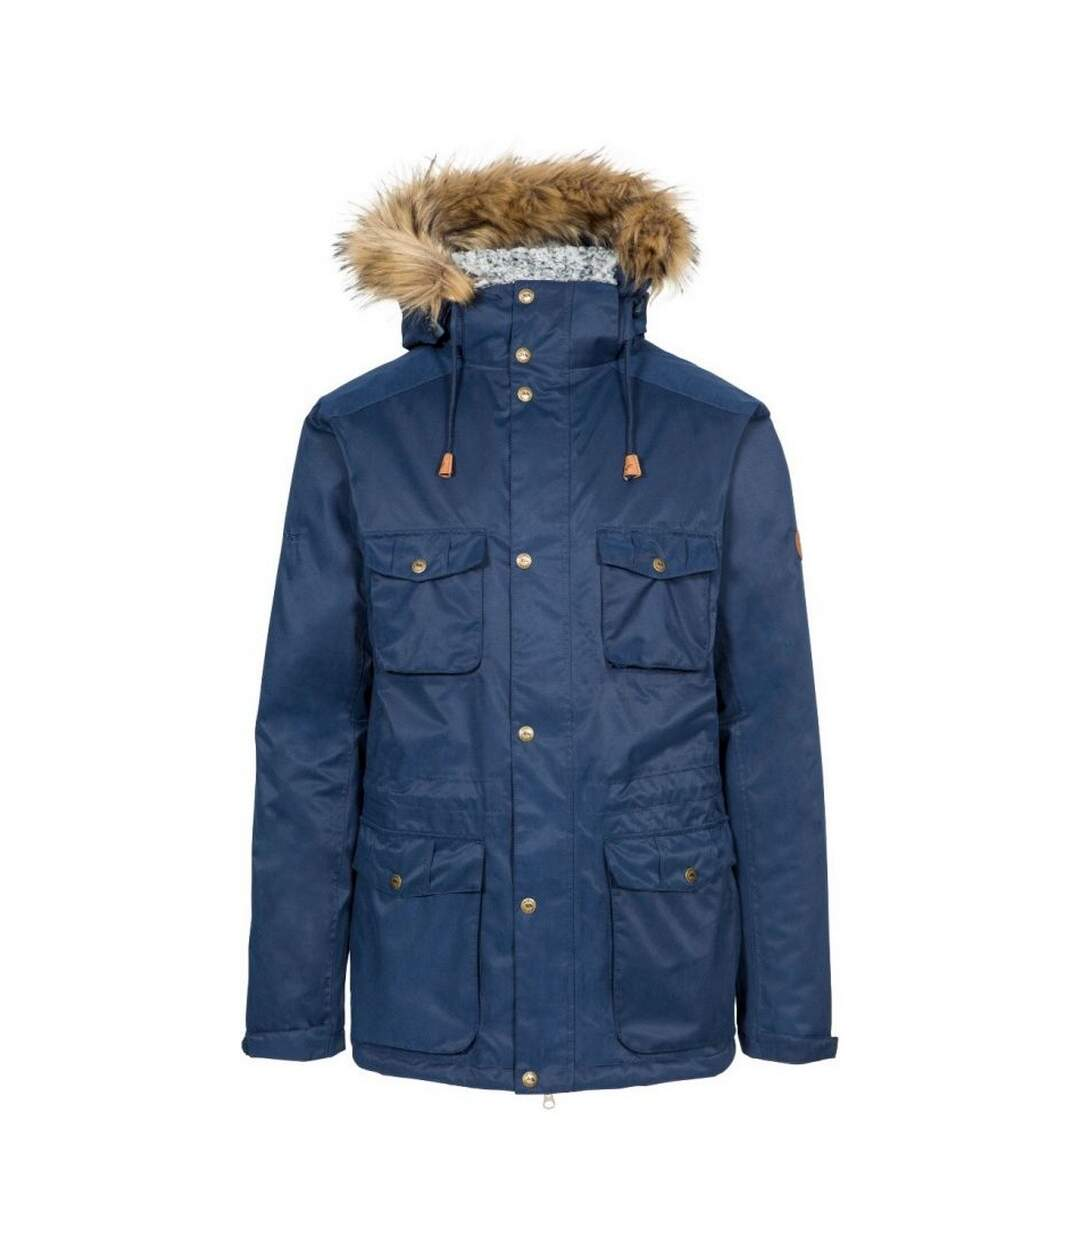 Trespass Mens Quebeckford Waterproof Jacket (Navy) - UTTP5249